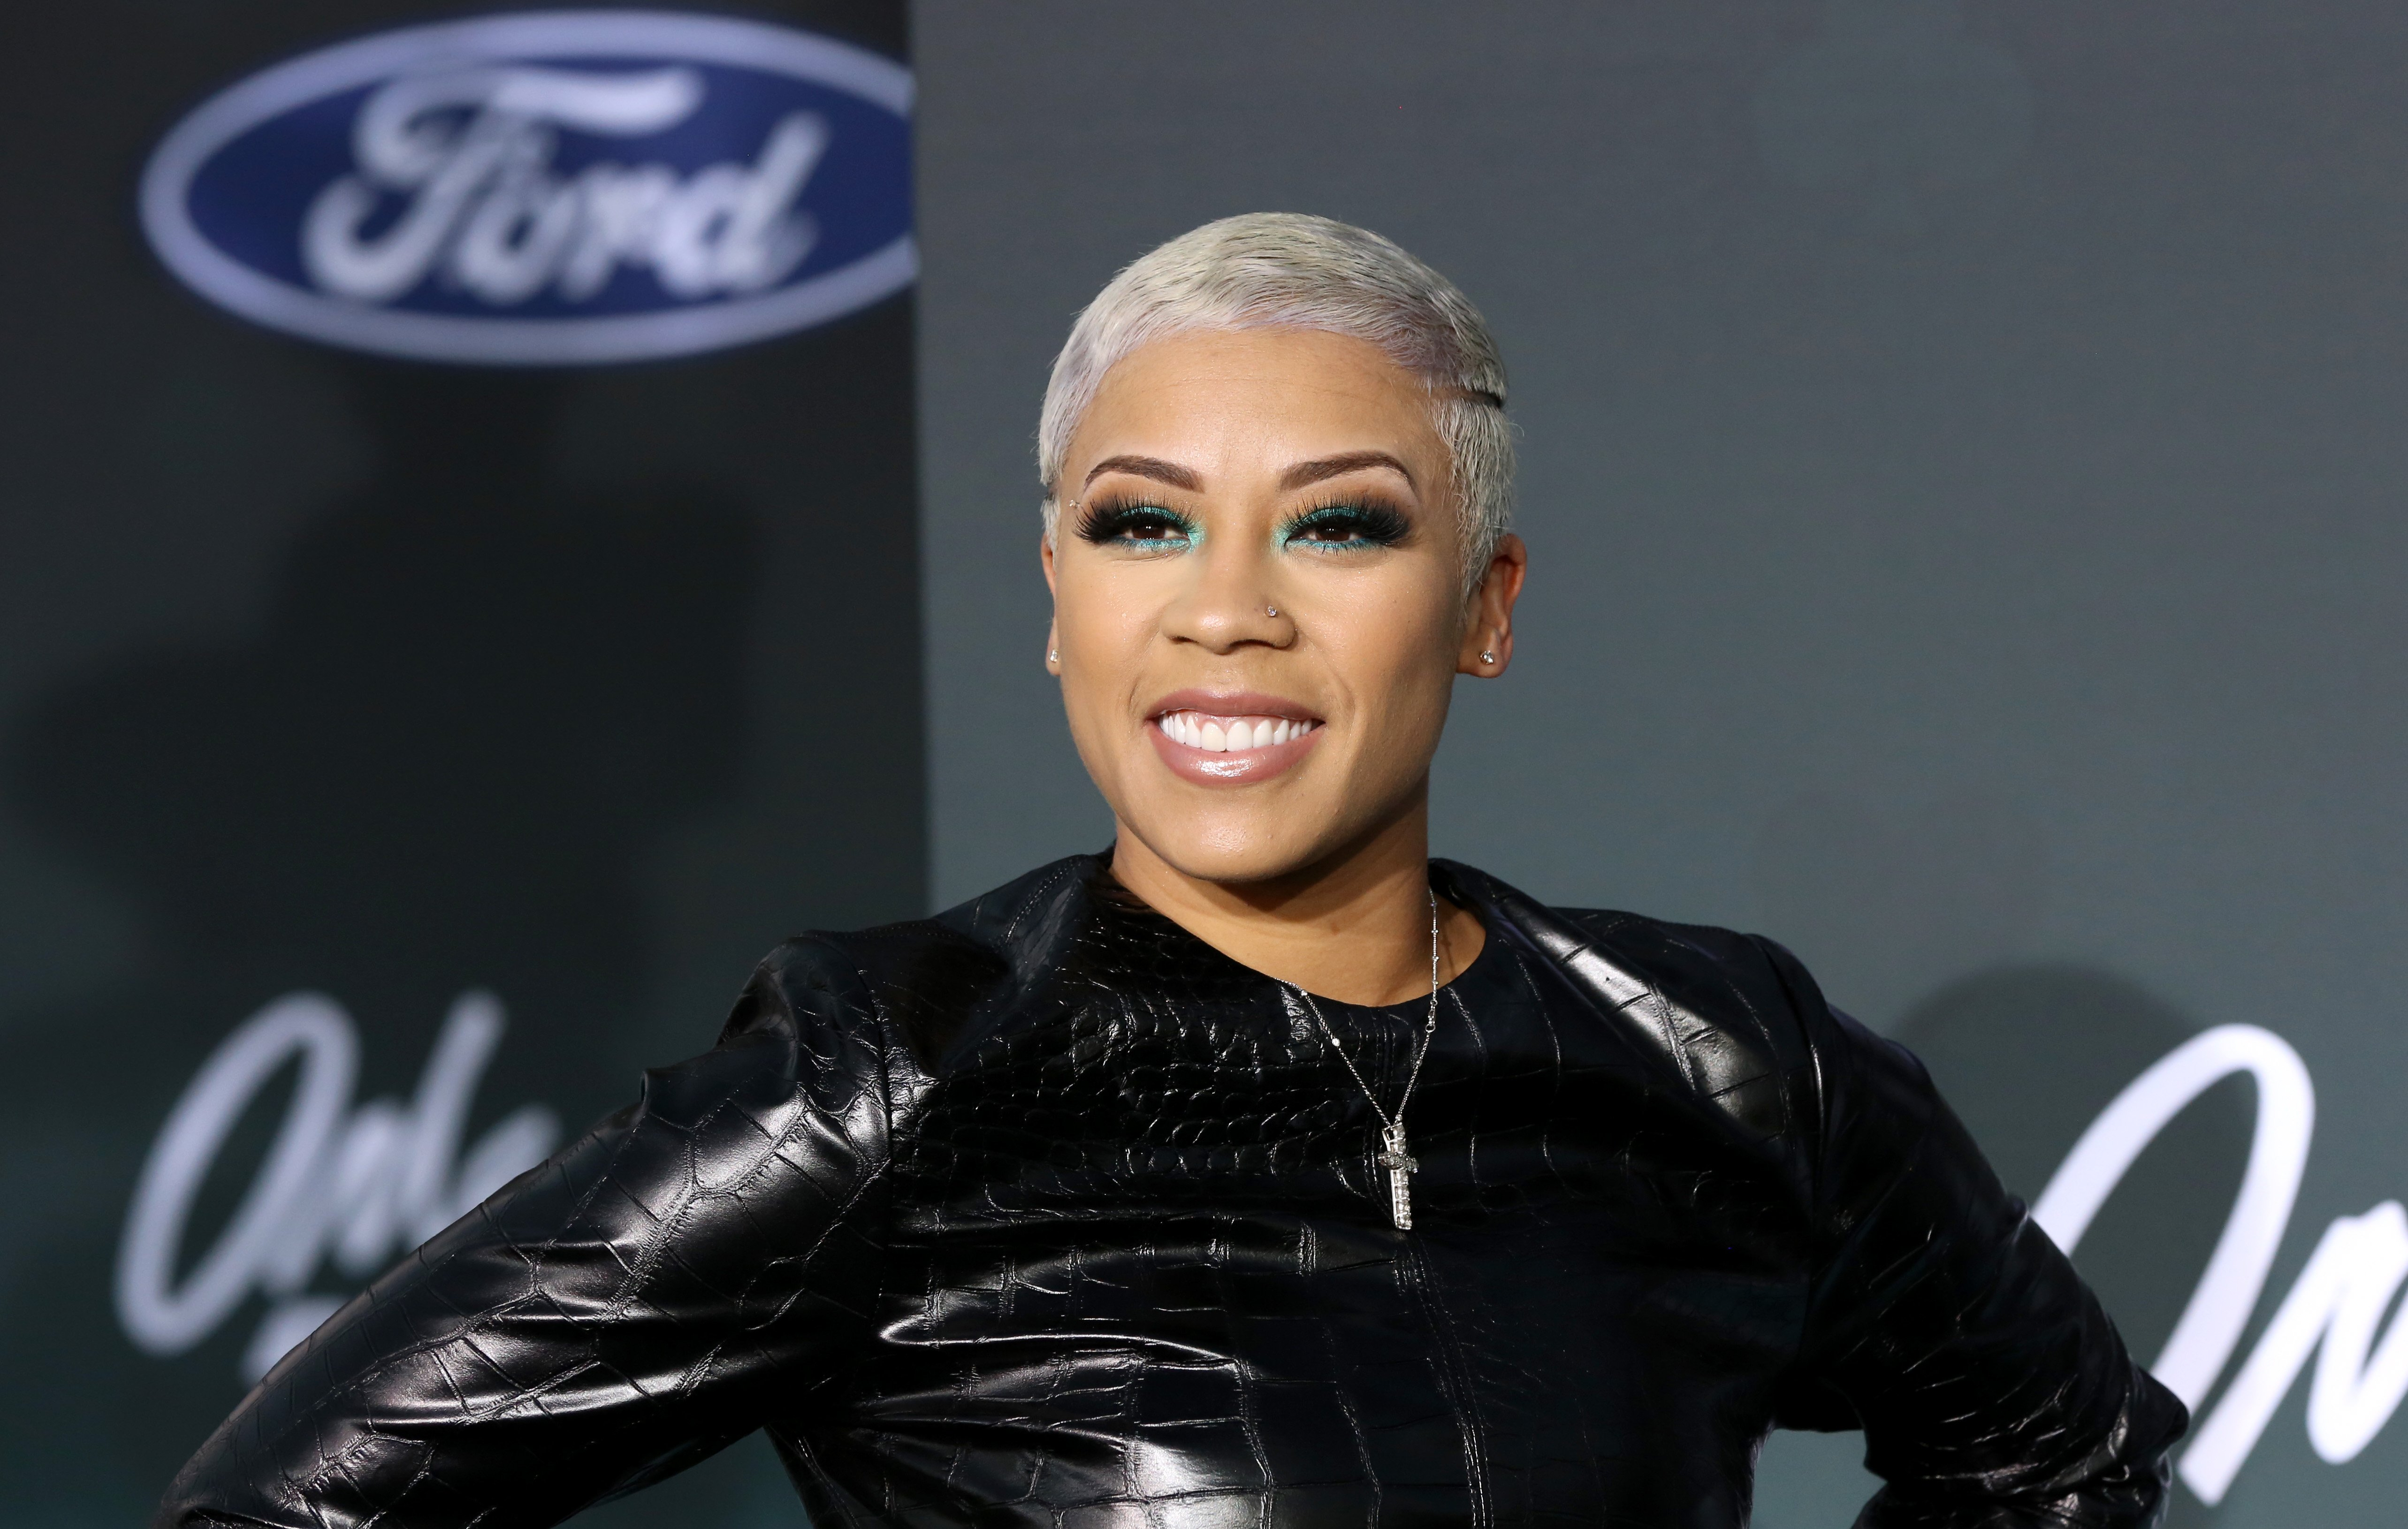 Keyshia Cole attends the 2019 Soul Train Awards at the Orleans Arena on November 17, 2019   Photo: GettyImages